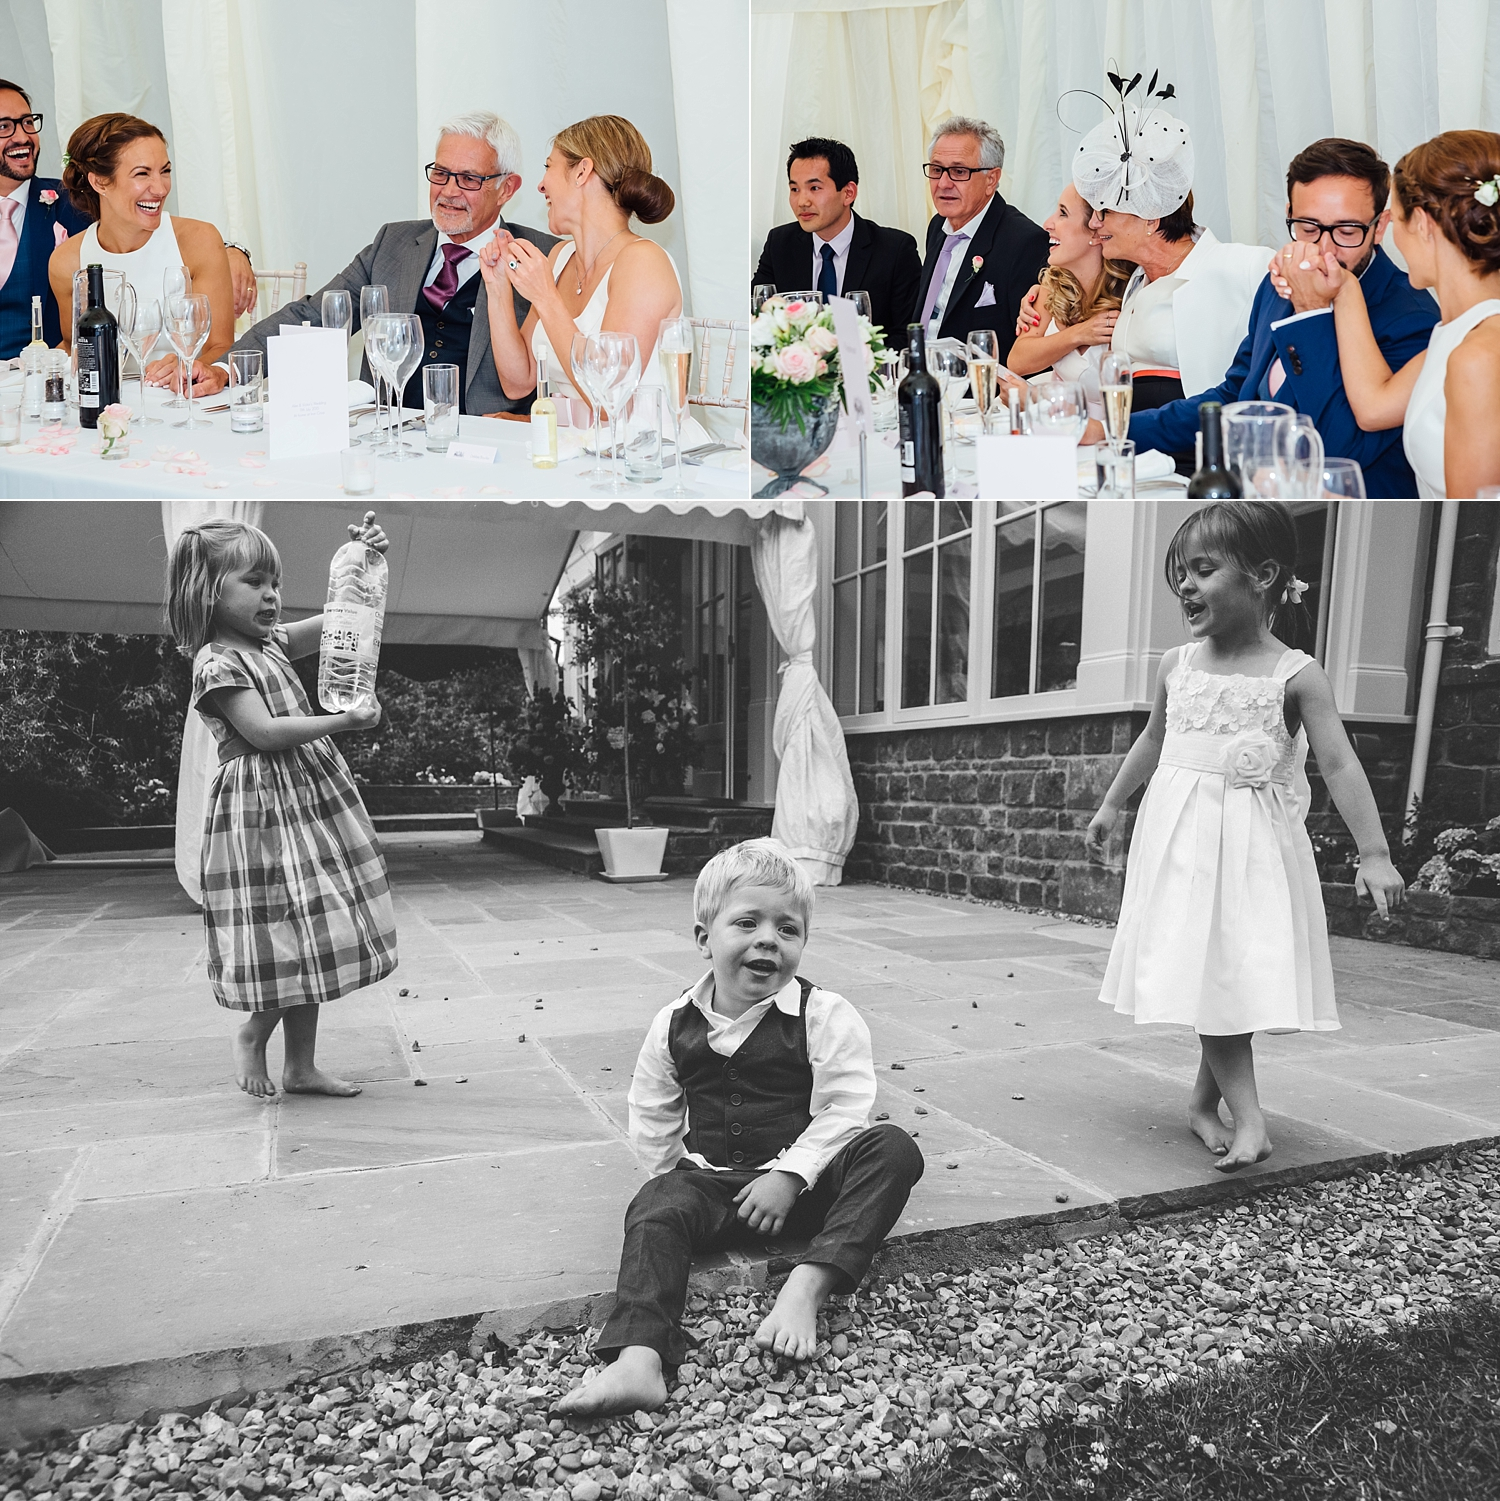 alexvictor-blog-natural-fun-relaxed-documentary-charlotte-jopling-wedding-photography-northamptonshire-home-garden-country-summer-49.jpg